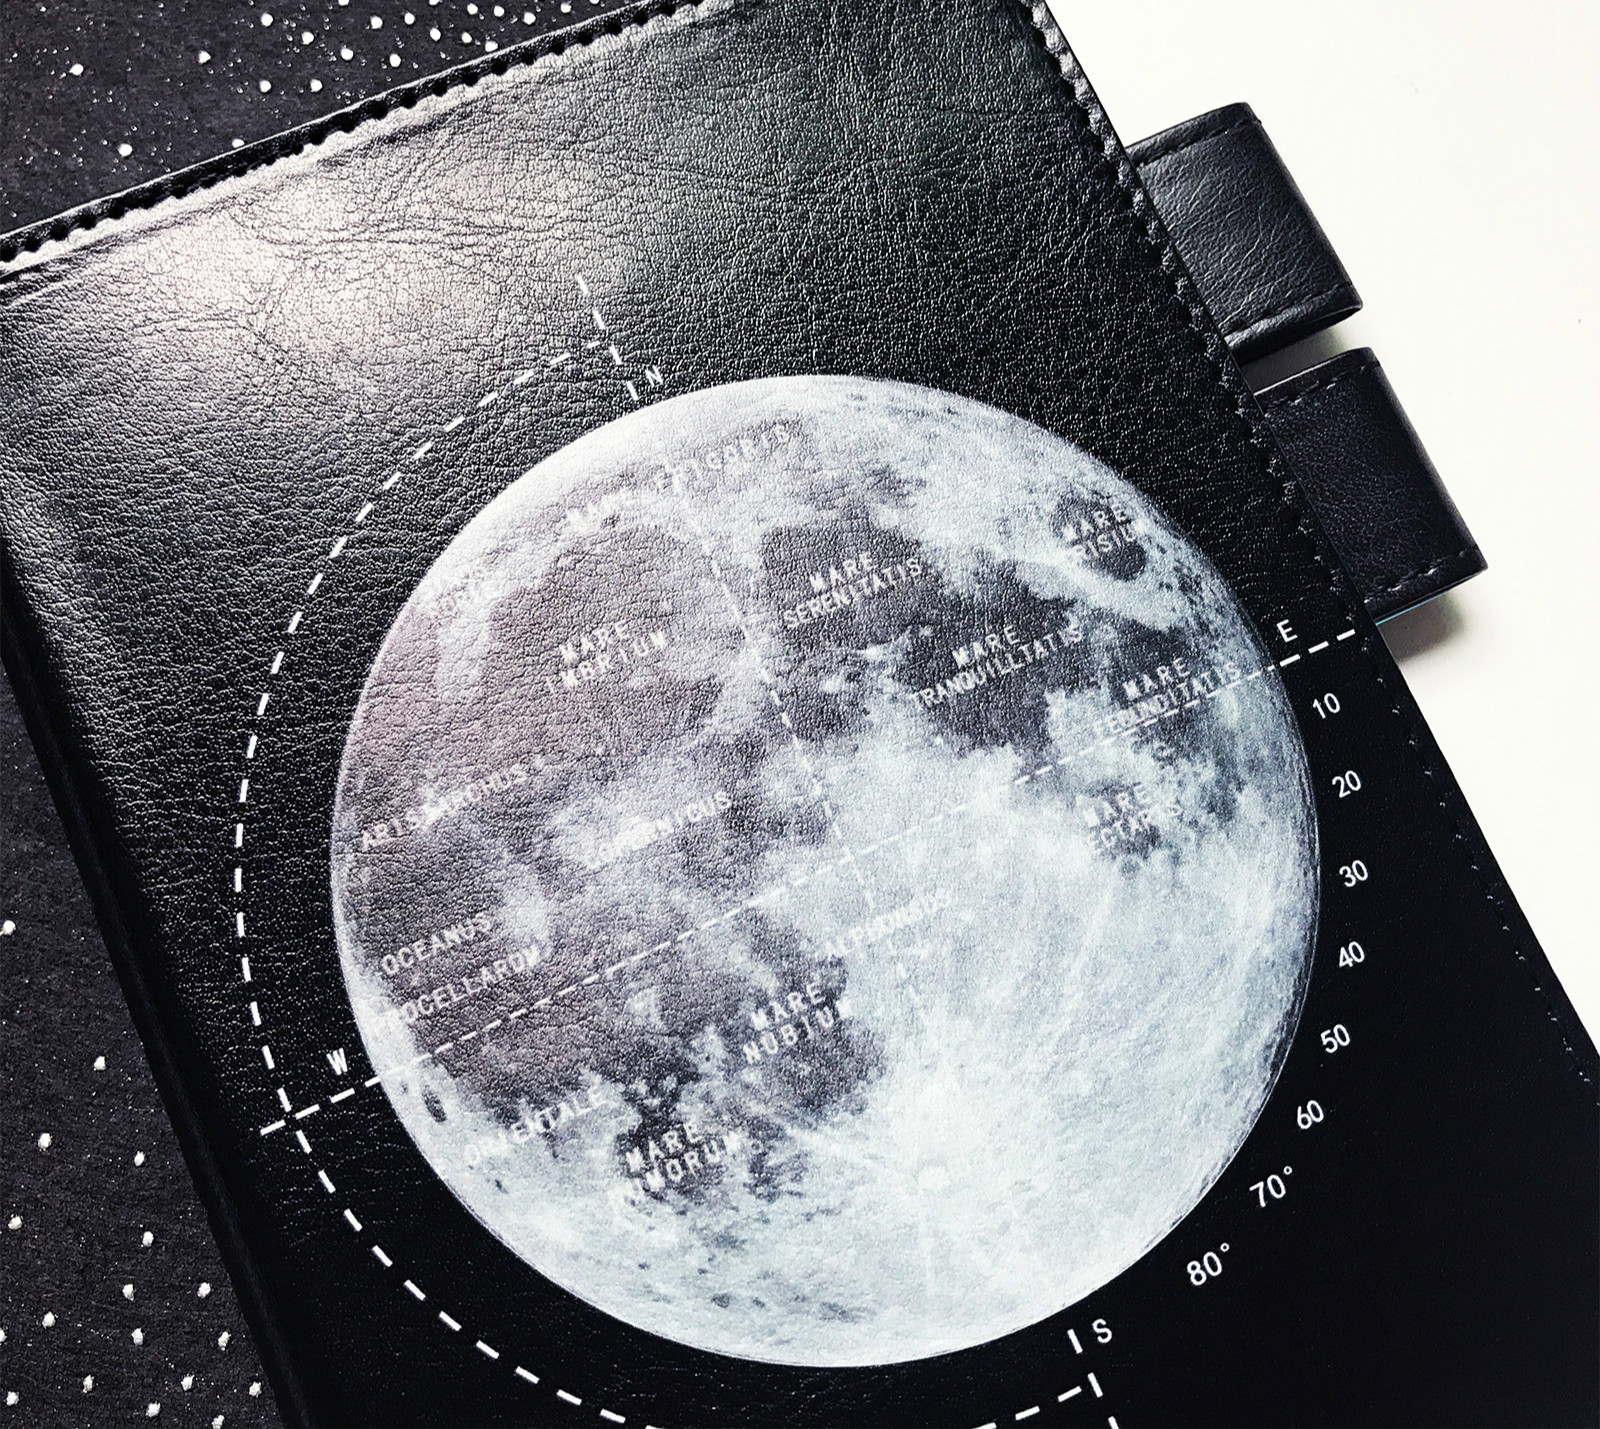 The Moon Journal Cover Suit For Standard A5 A6 Fitted Paper Book Free Shipping <font><b>2020</b></font> DIY <font><b>Planner</b></font> Supplies Gift image